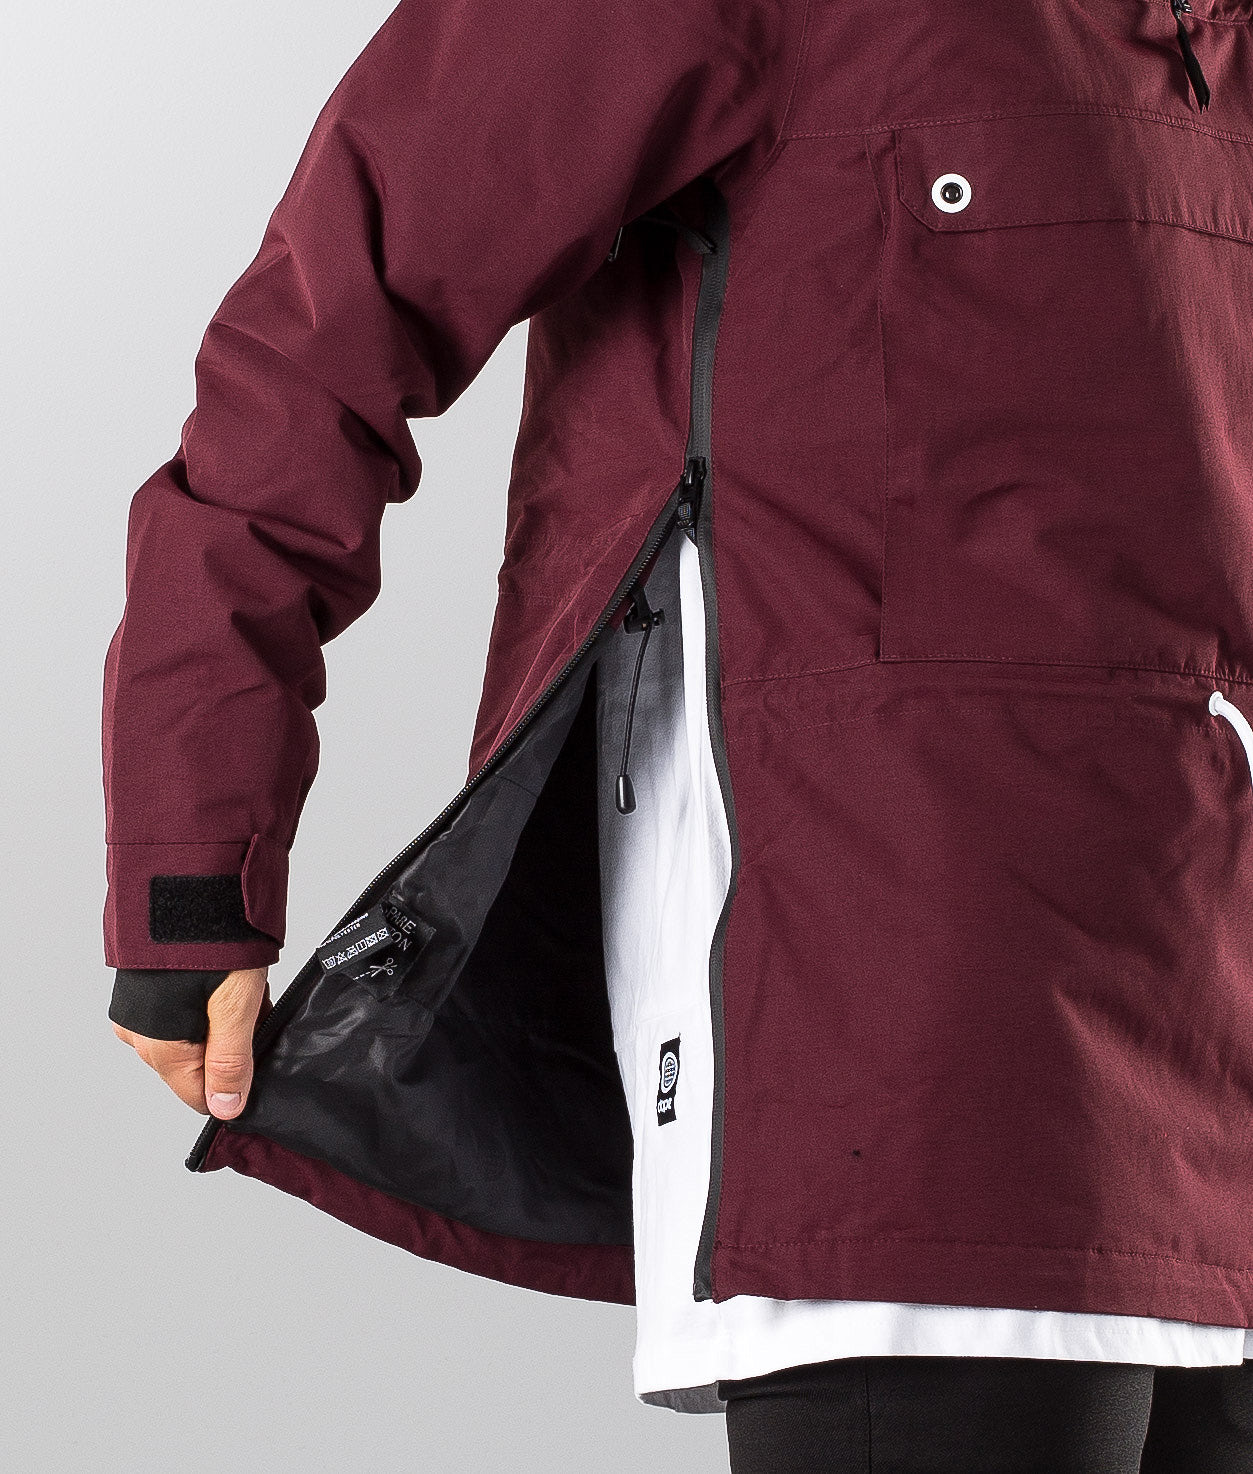 Buy Annok W 18 Snowboard Jacket from Dope at Ridestore.com - Always free shipping, free returns and 30 days money back guarantee